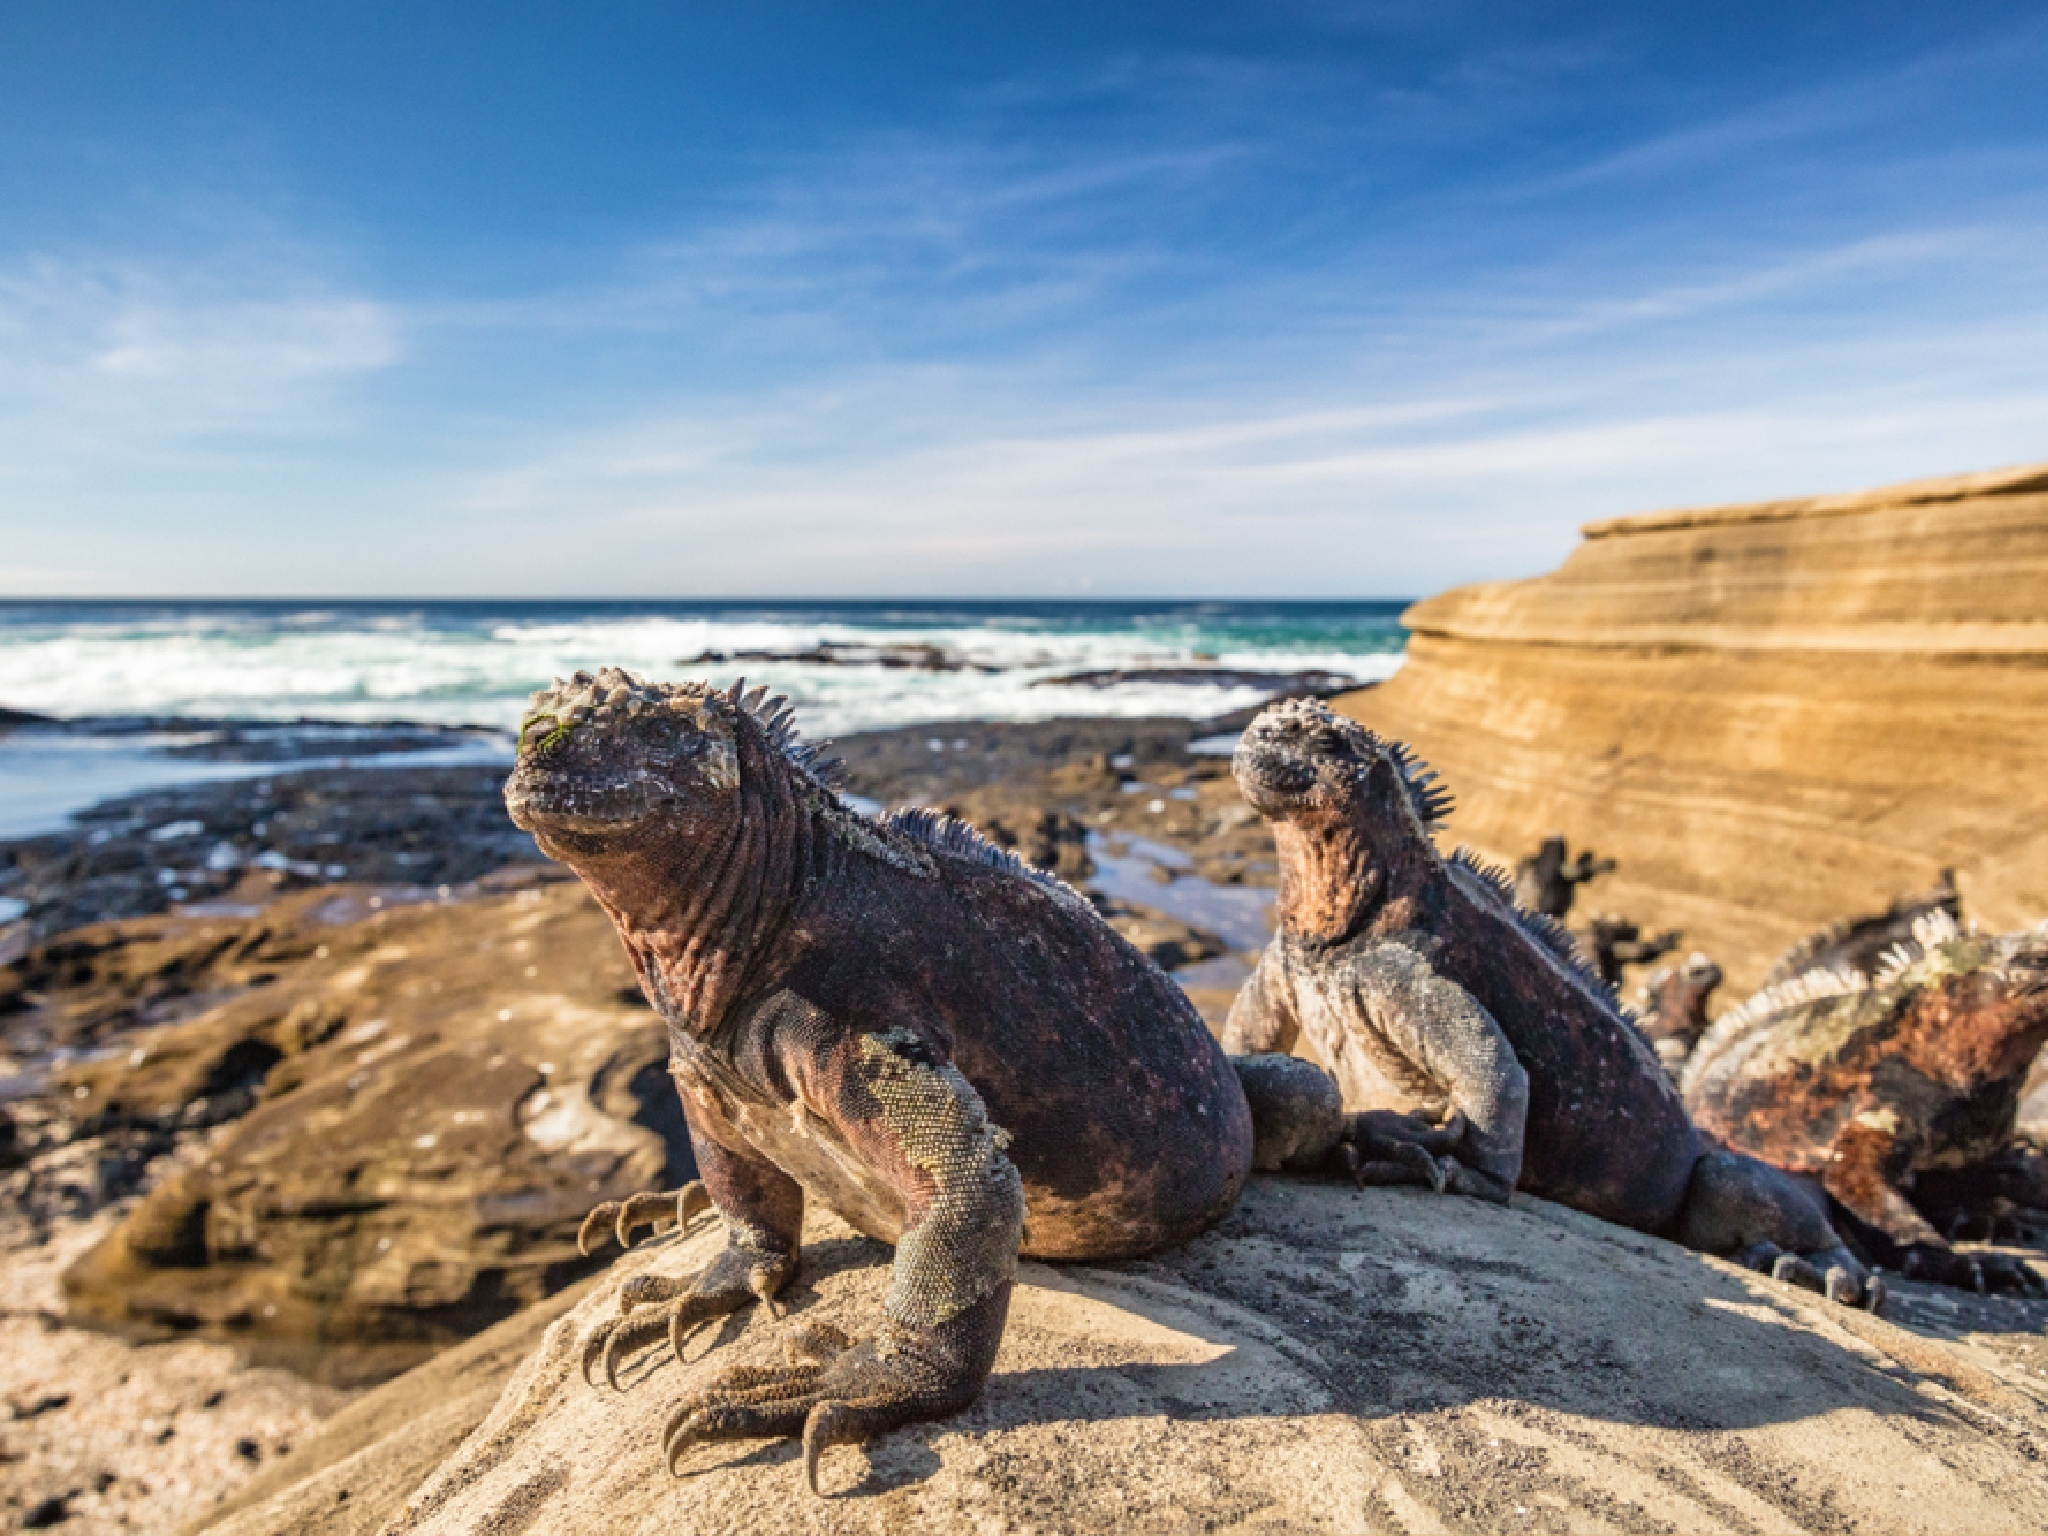 Wildlife is reclaiming the Galápagos Islands